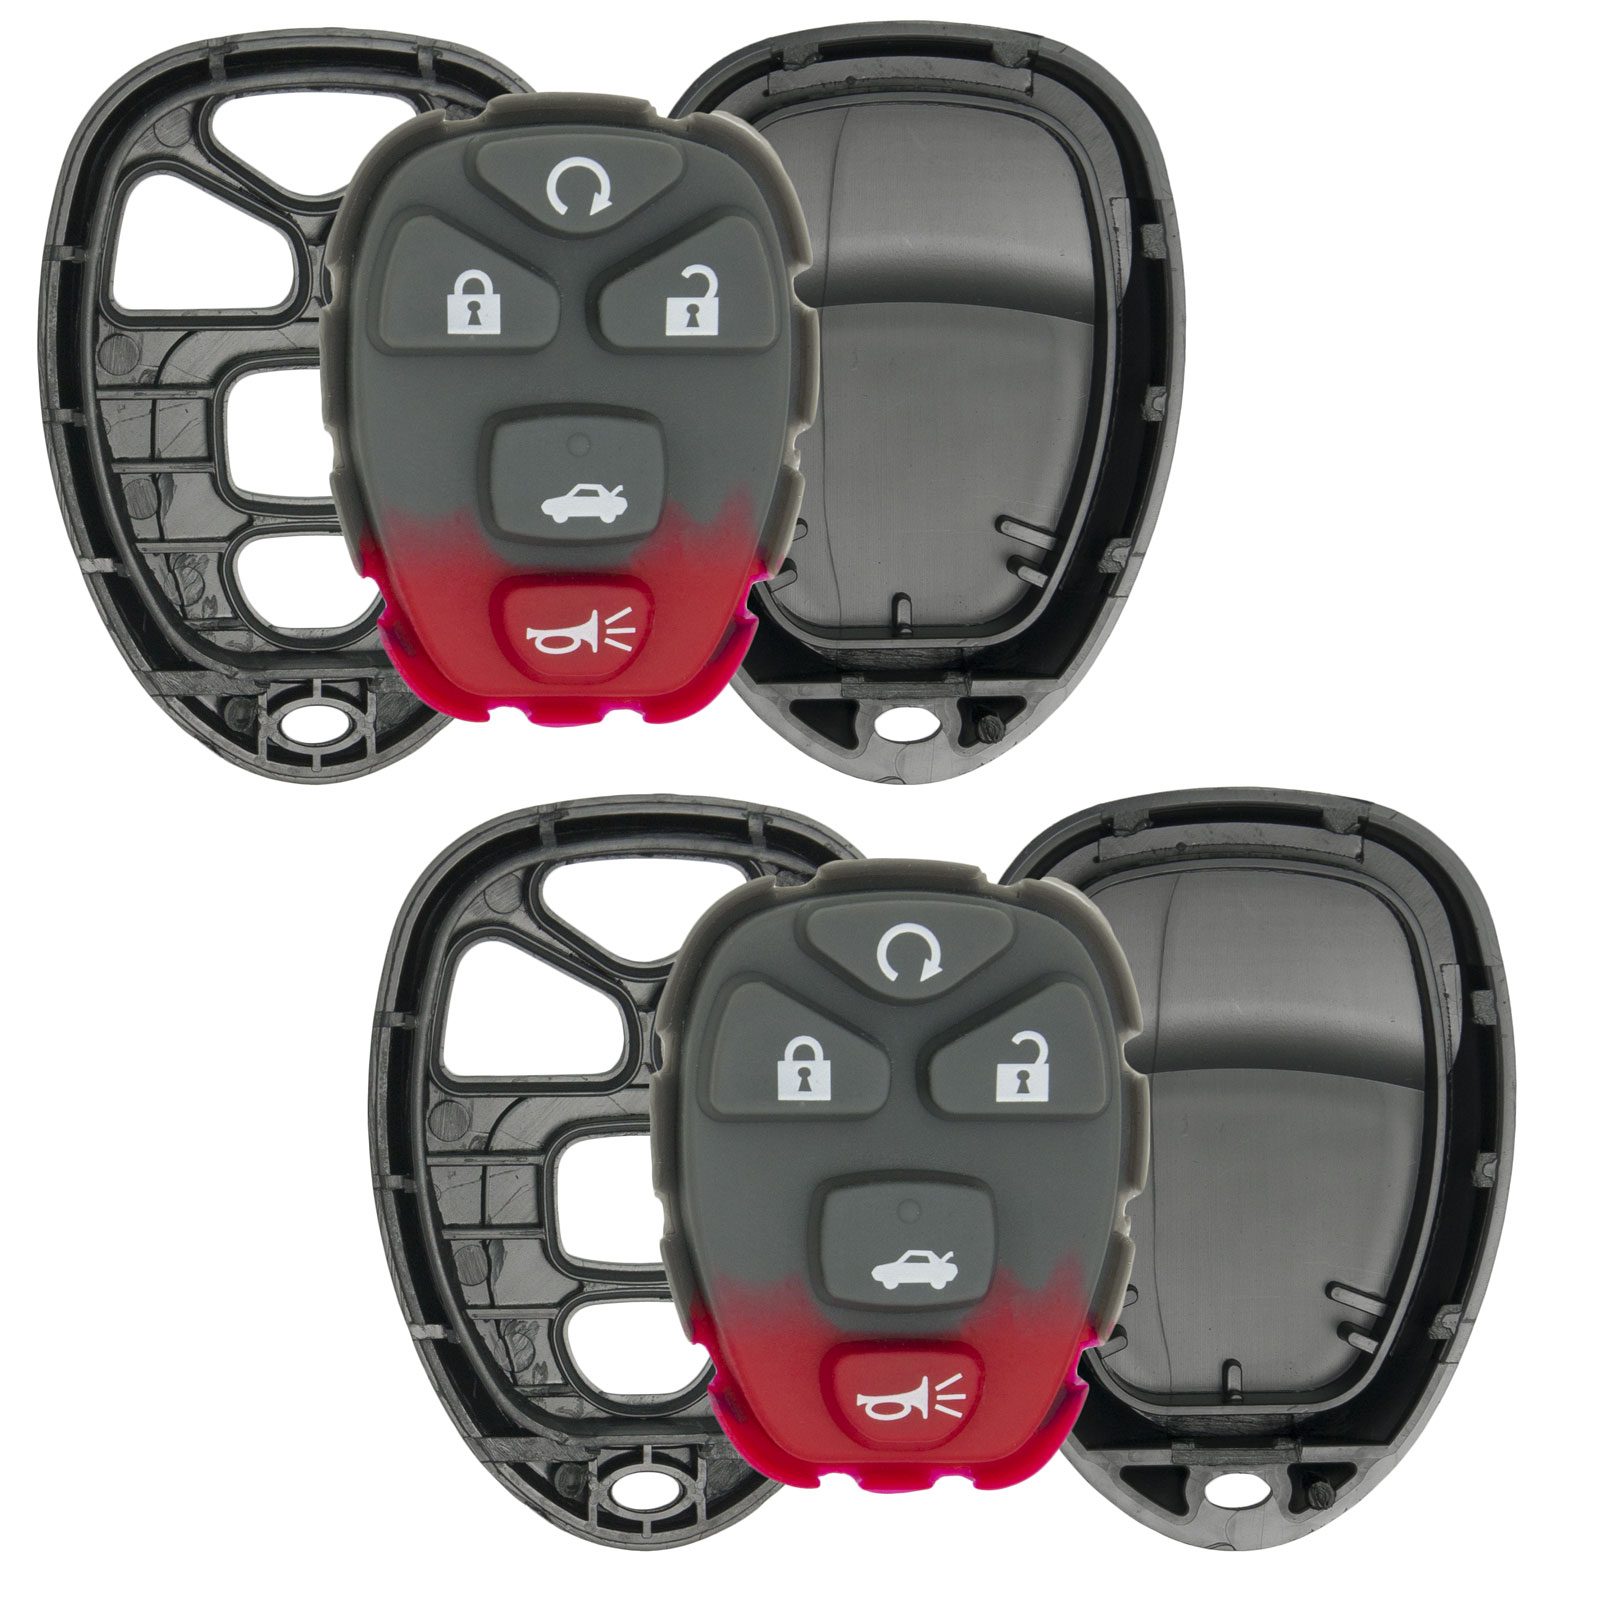 Keyless2Go New Replacement Shell Case and 5 Button Pad for Remote Key Fob with FCC KOBGT04A - SHELL ONLY (2 Pack)